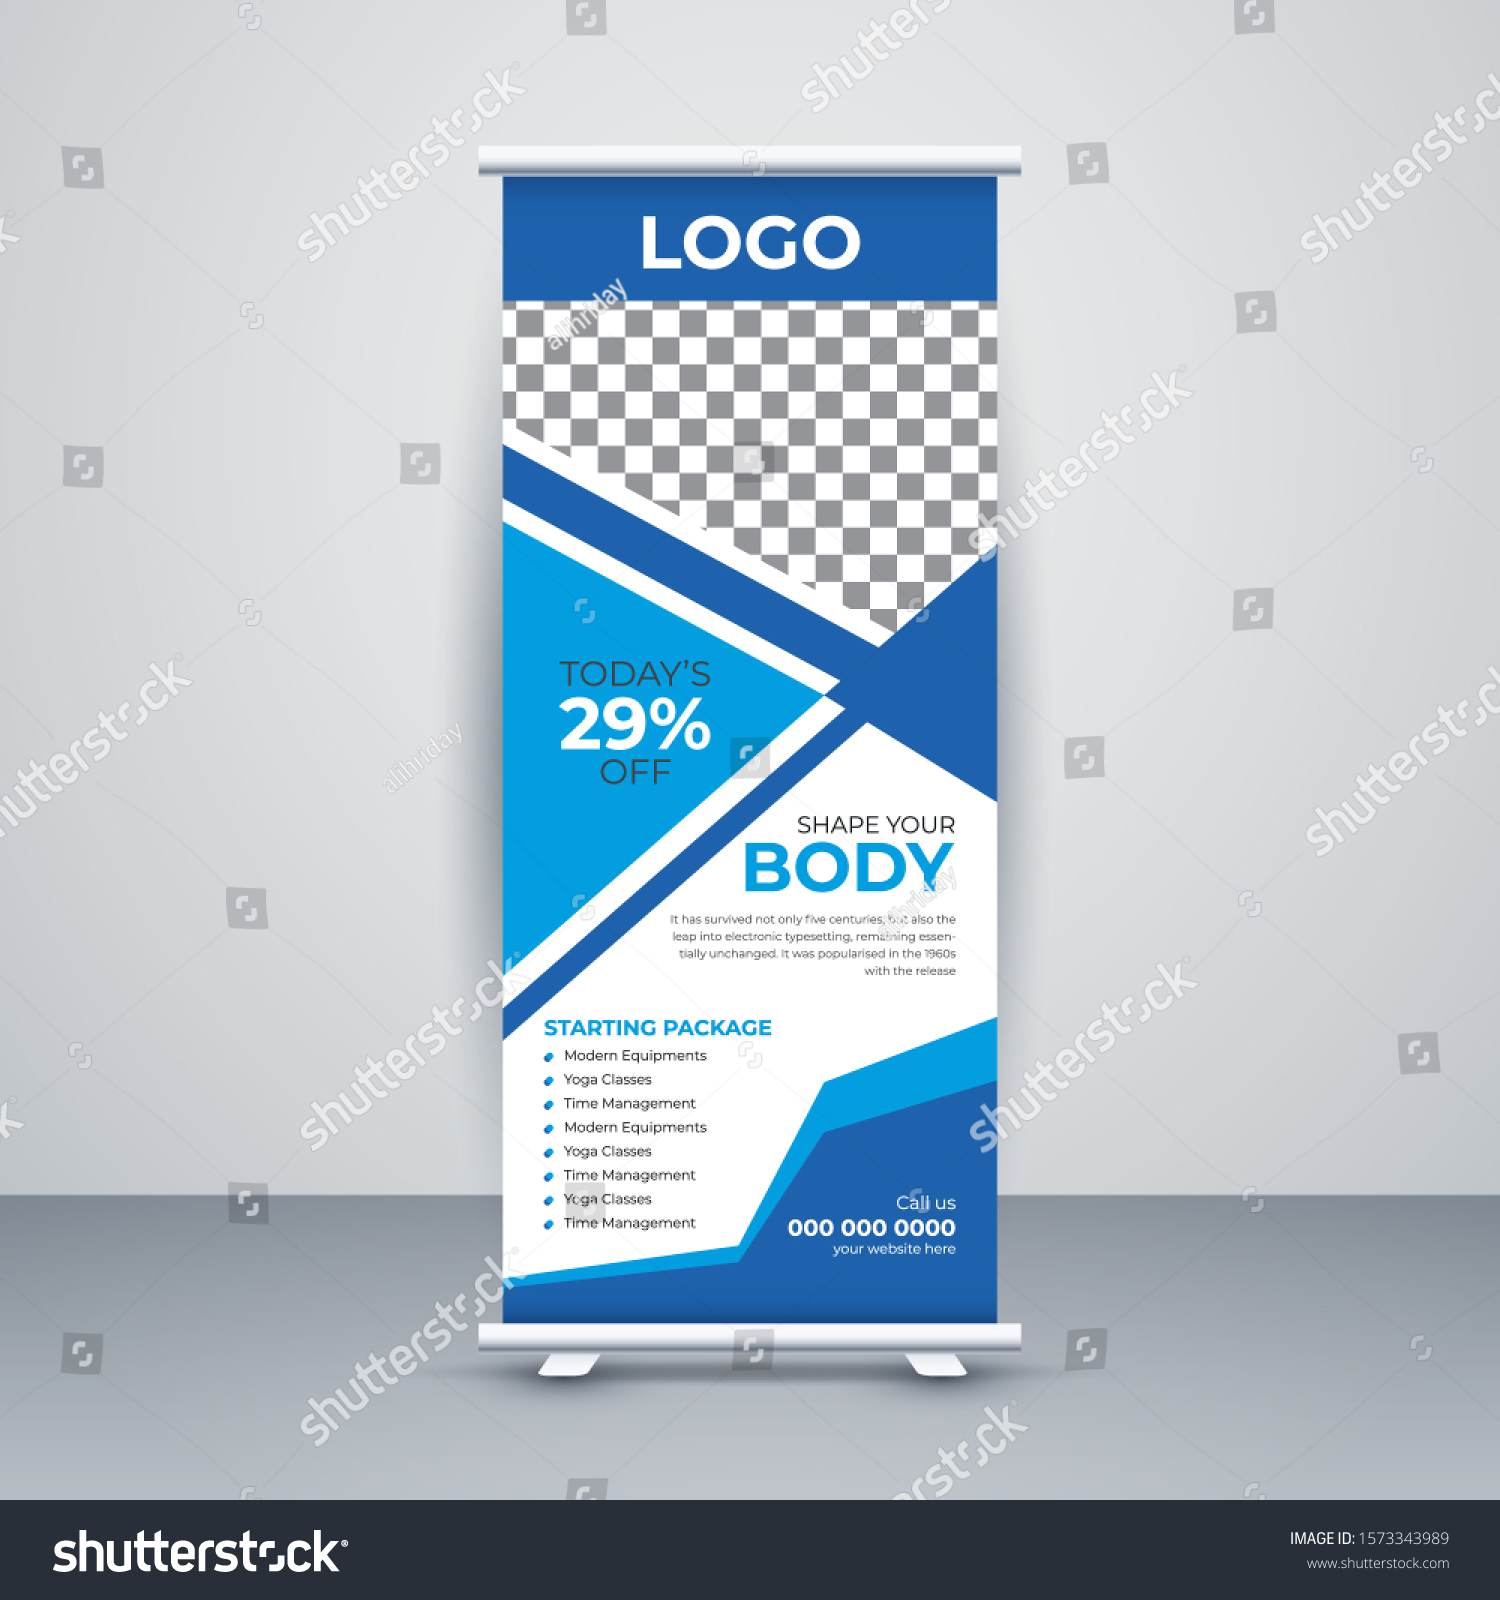 Creative Fitness Roll Sale Banner Design Stock Vector Royalty Free 1573343989